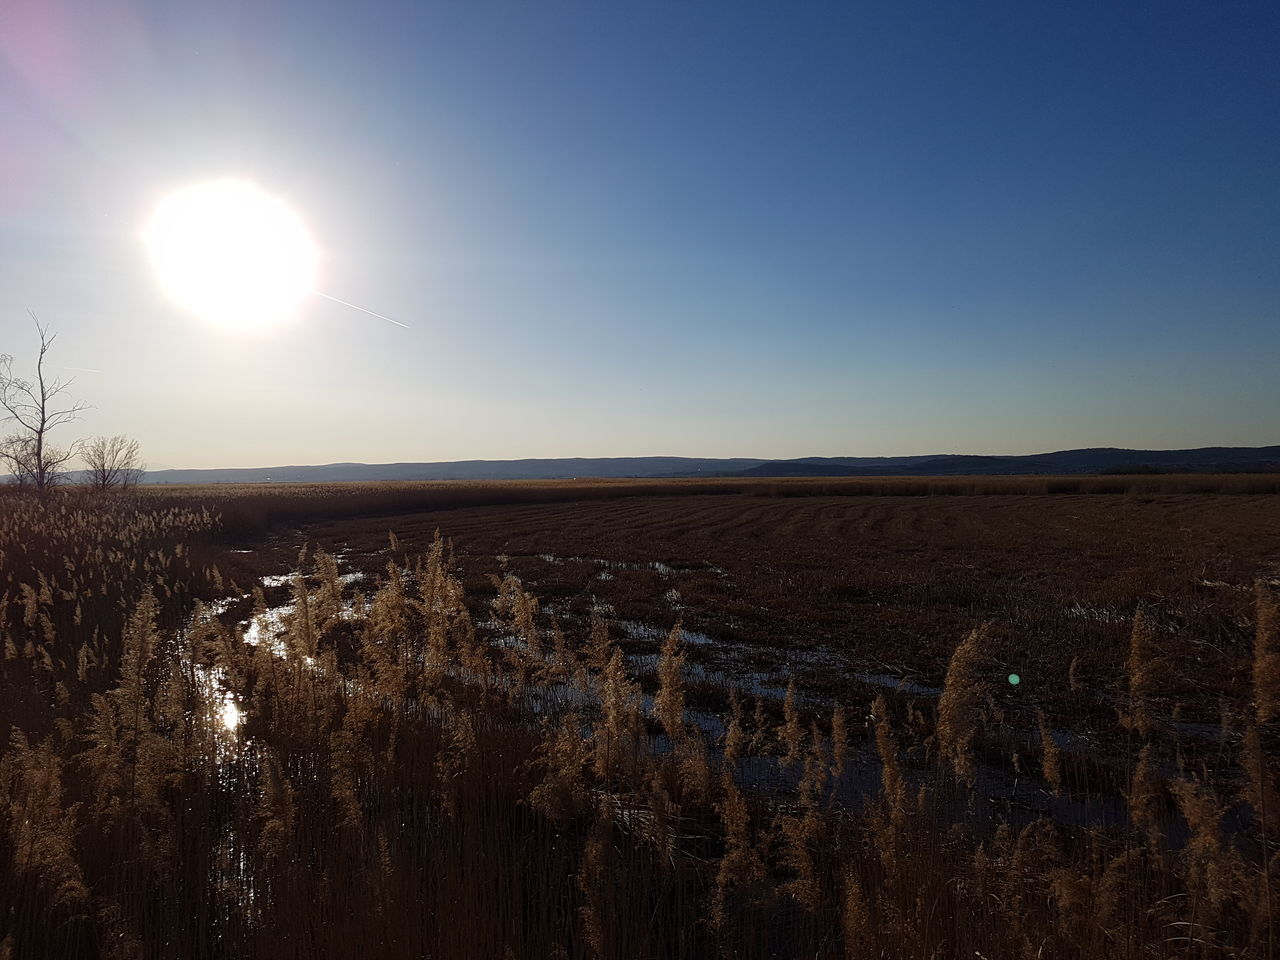 landscape, nature, beauty in nature, tranquil scene, tranquility, field, sun, scenics, sunlight, outdoors, no people, sky, clear sky, agriculture, rural scene, day